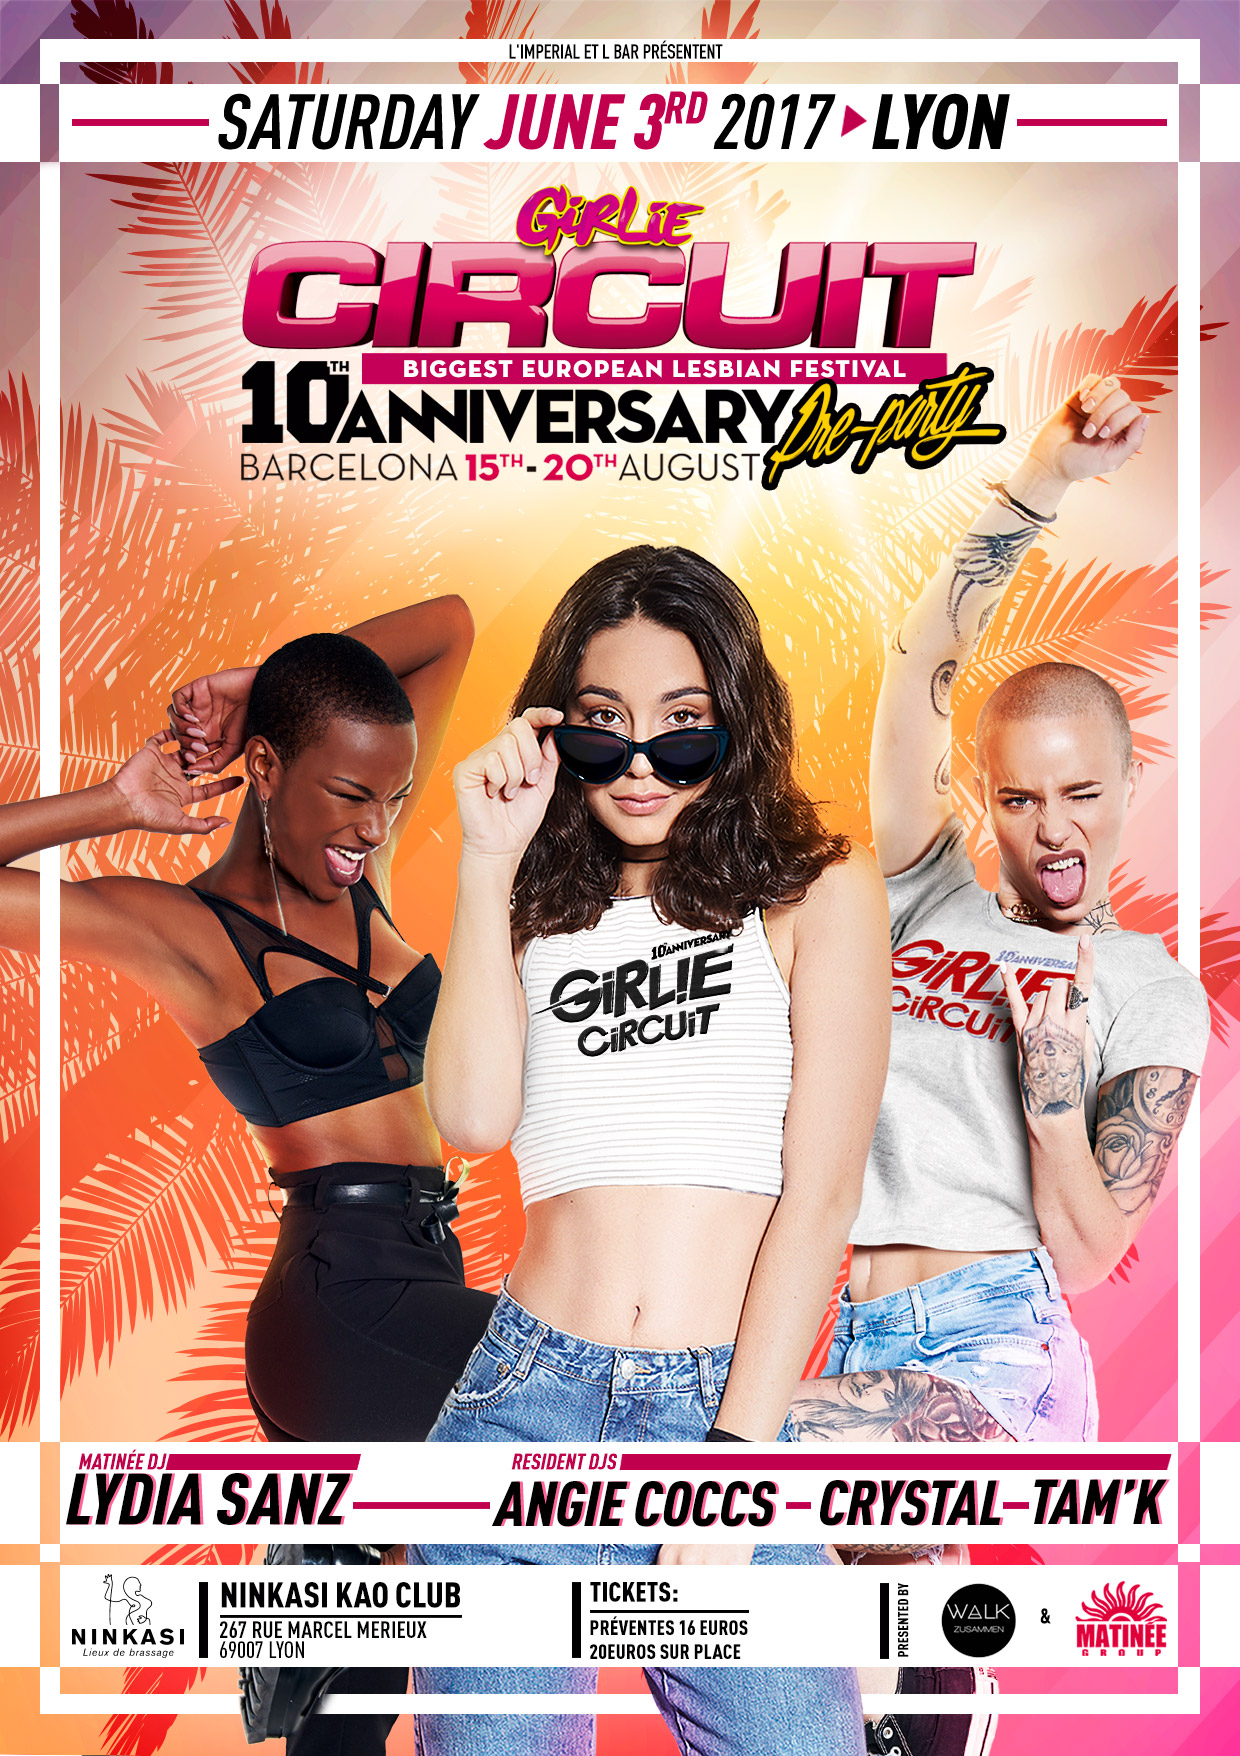 preparty-lyon-girlie-circuit-matinee-group